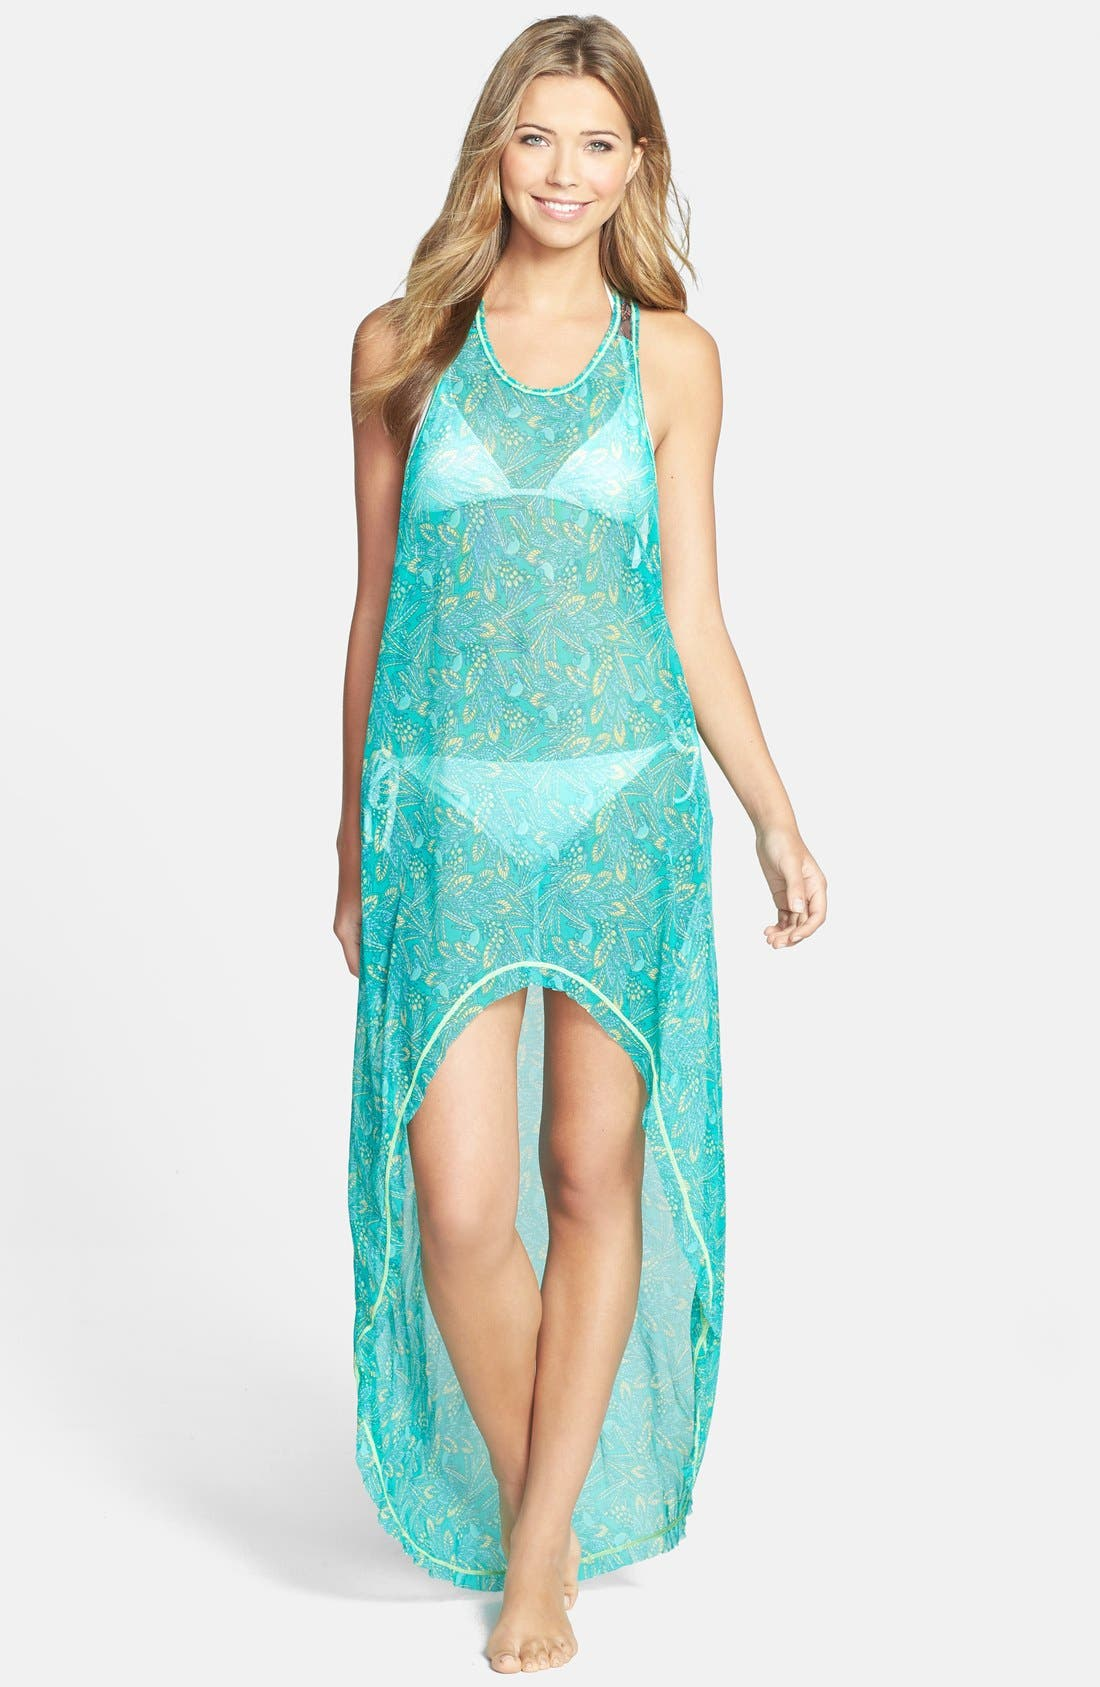 'Darling Sparrow' High/Low Cover-Up Dress,                             Main thumbnail 1, color,                             300